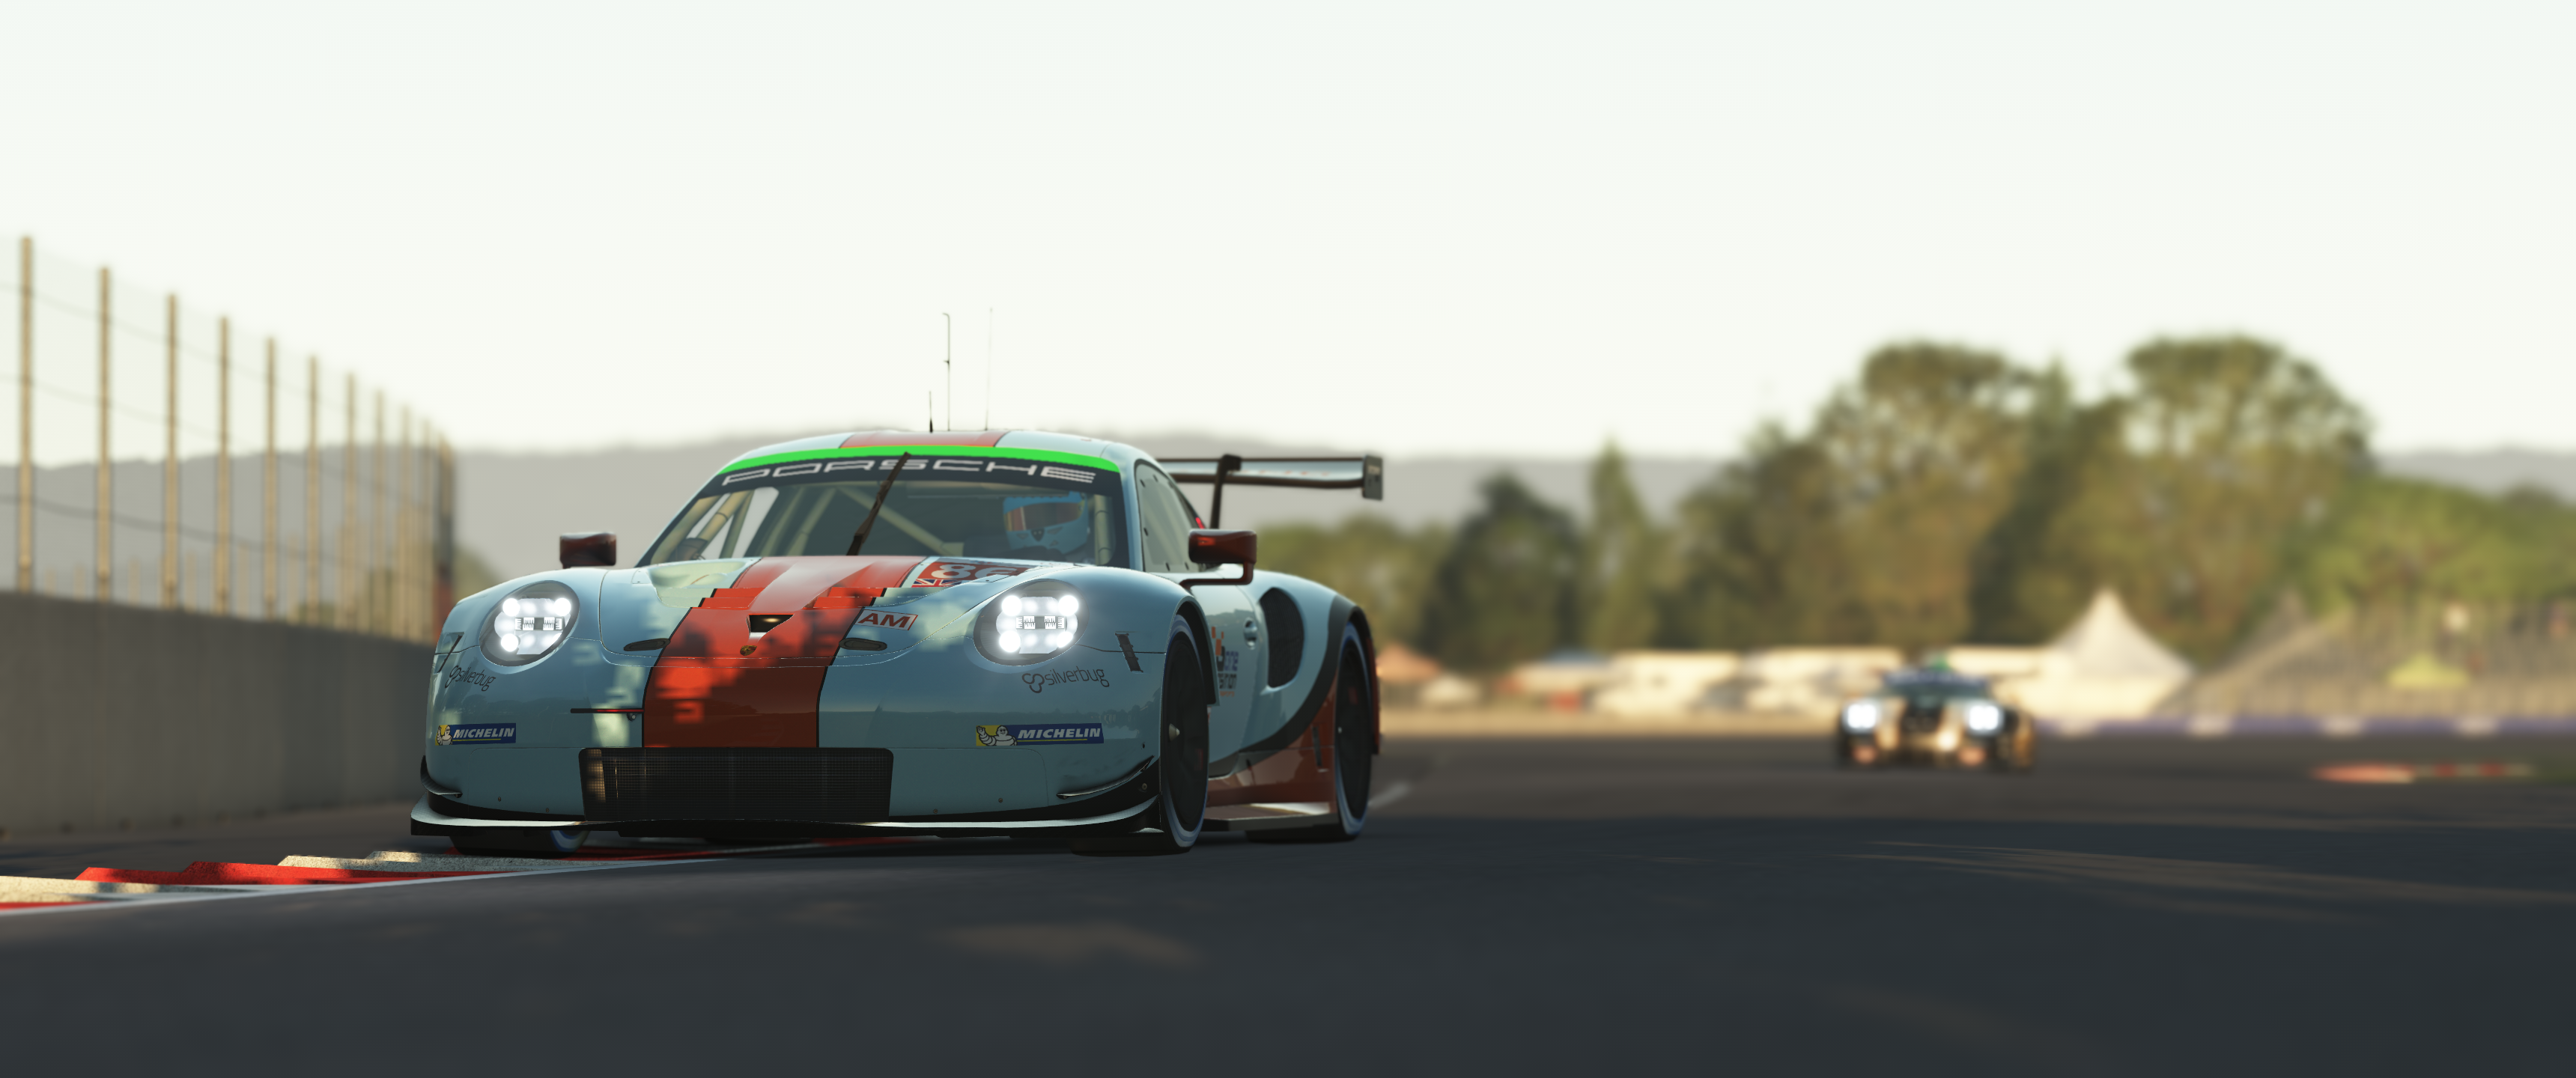 rFactor2 2020-06-30 00-47-20-28.png